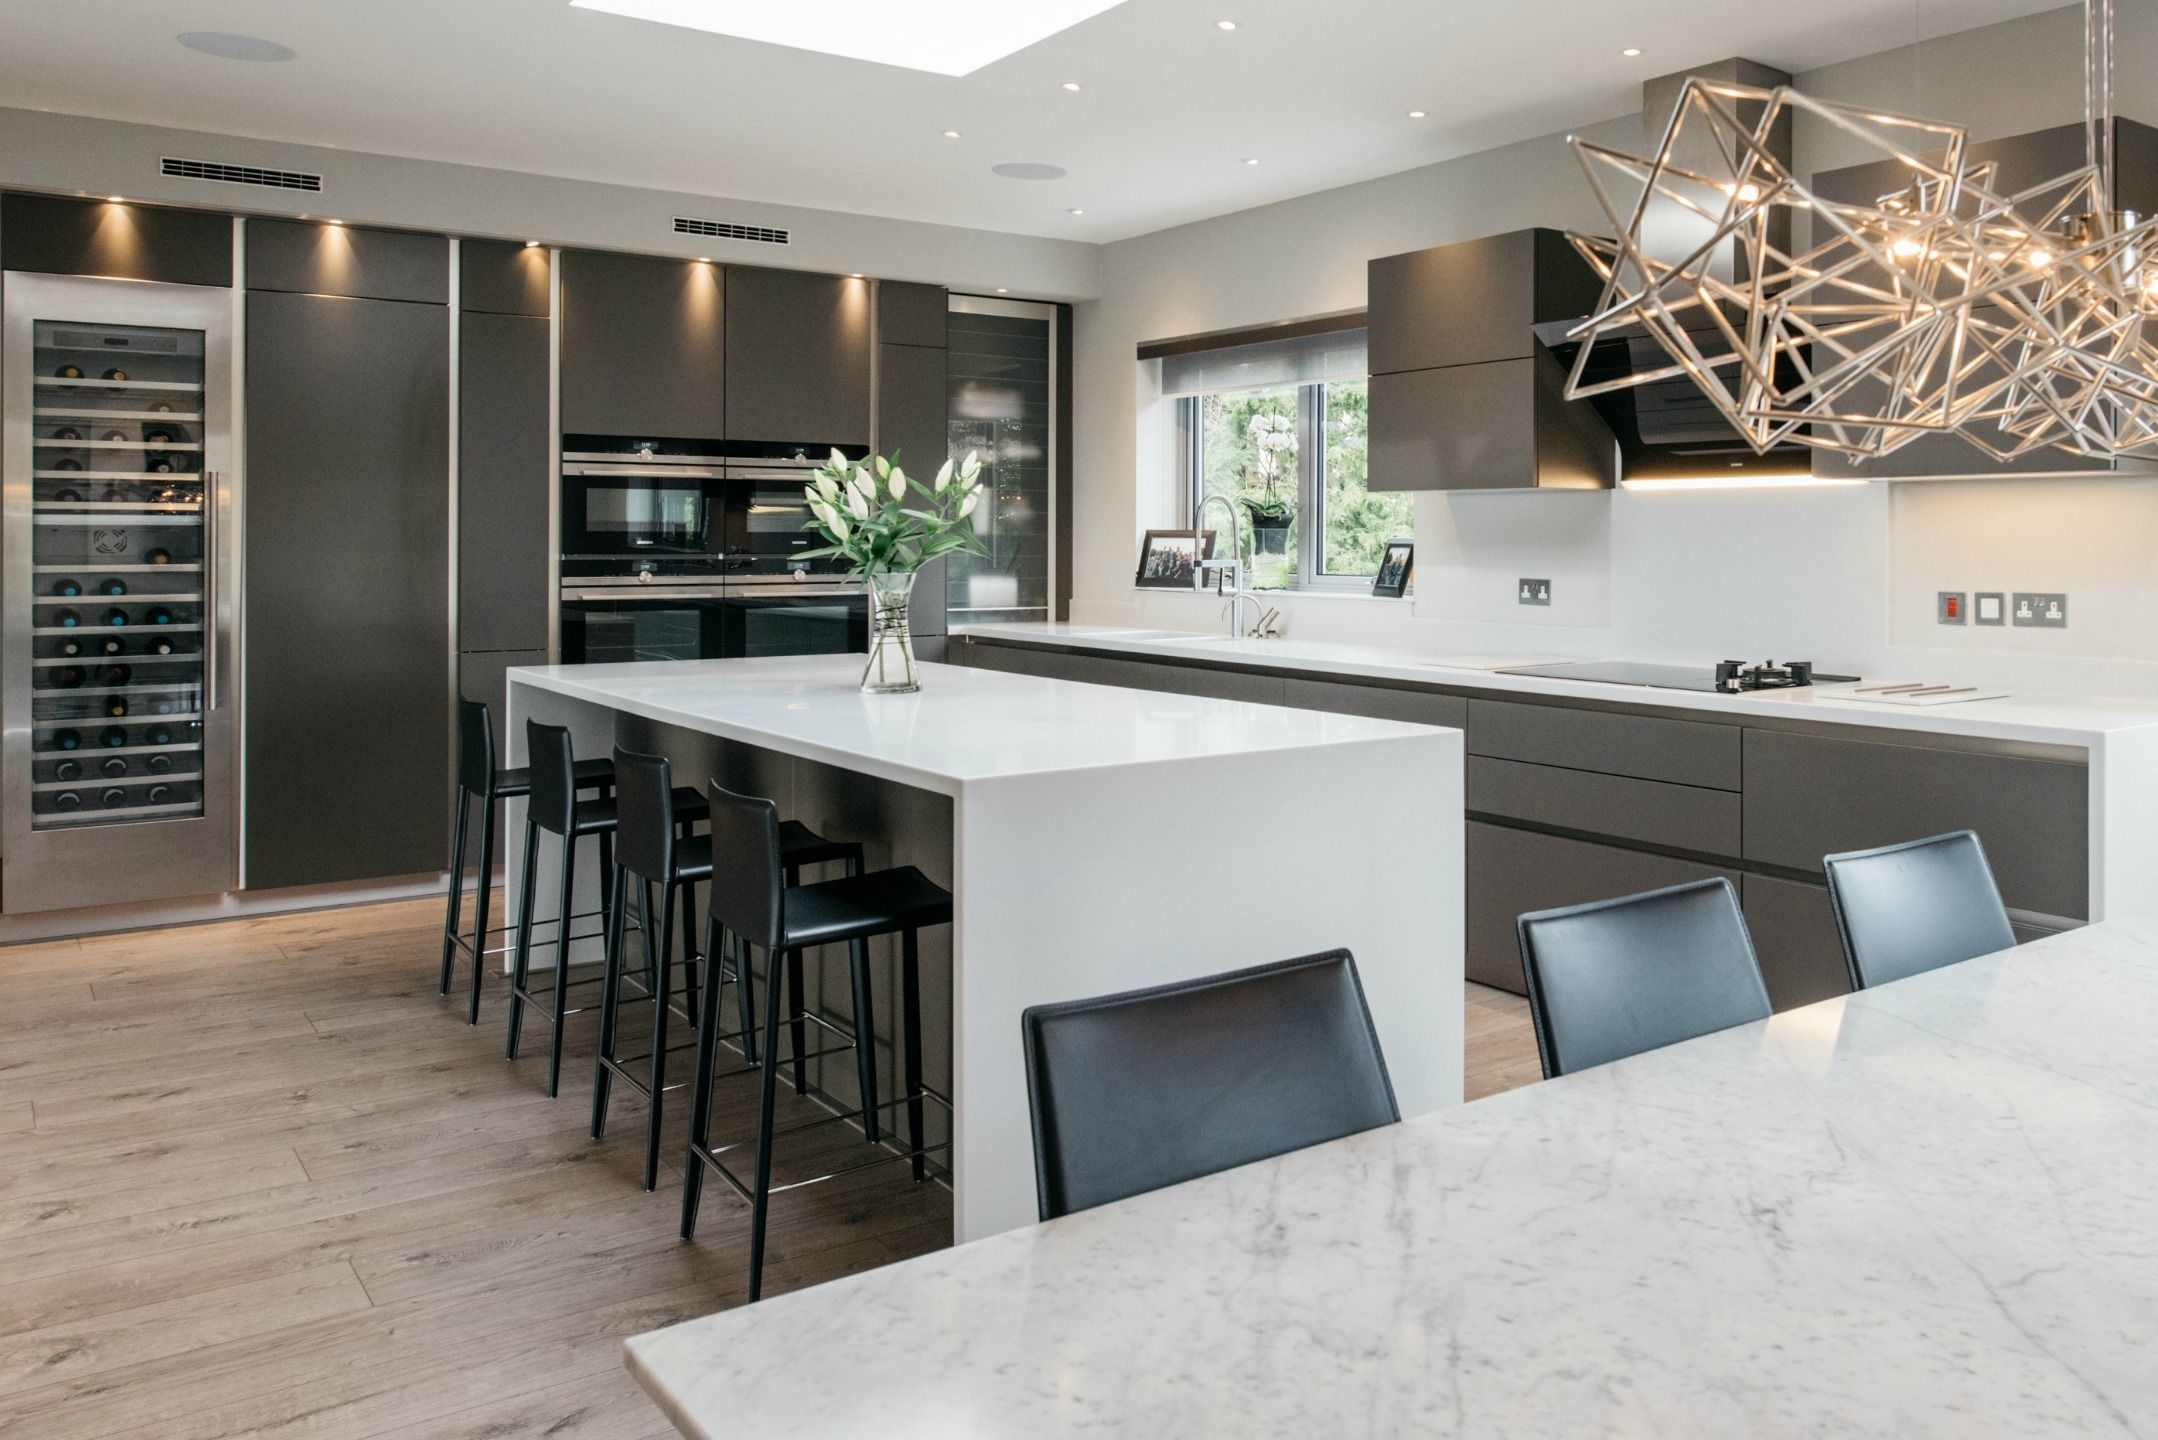 66 Beautiful Kitchen Design Ideas For The Heart Of Your Home